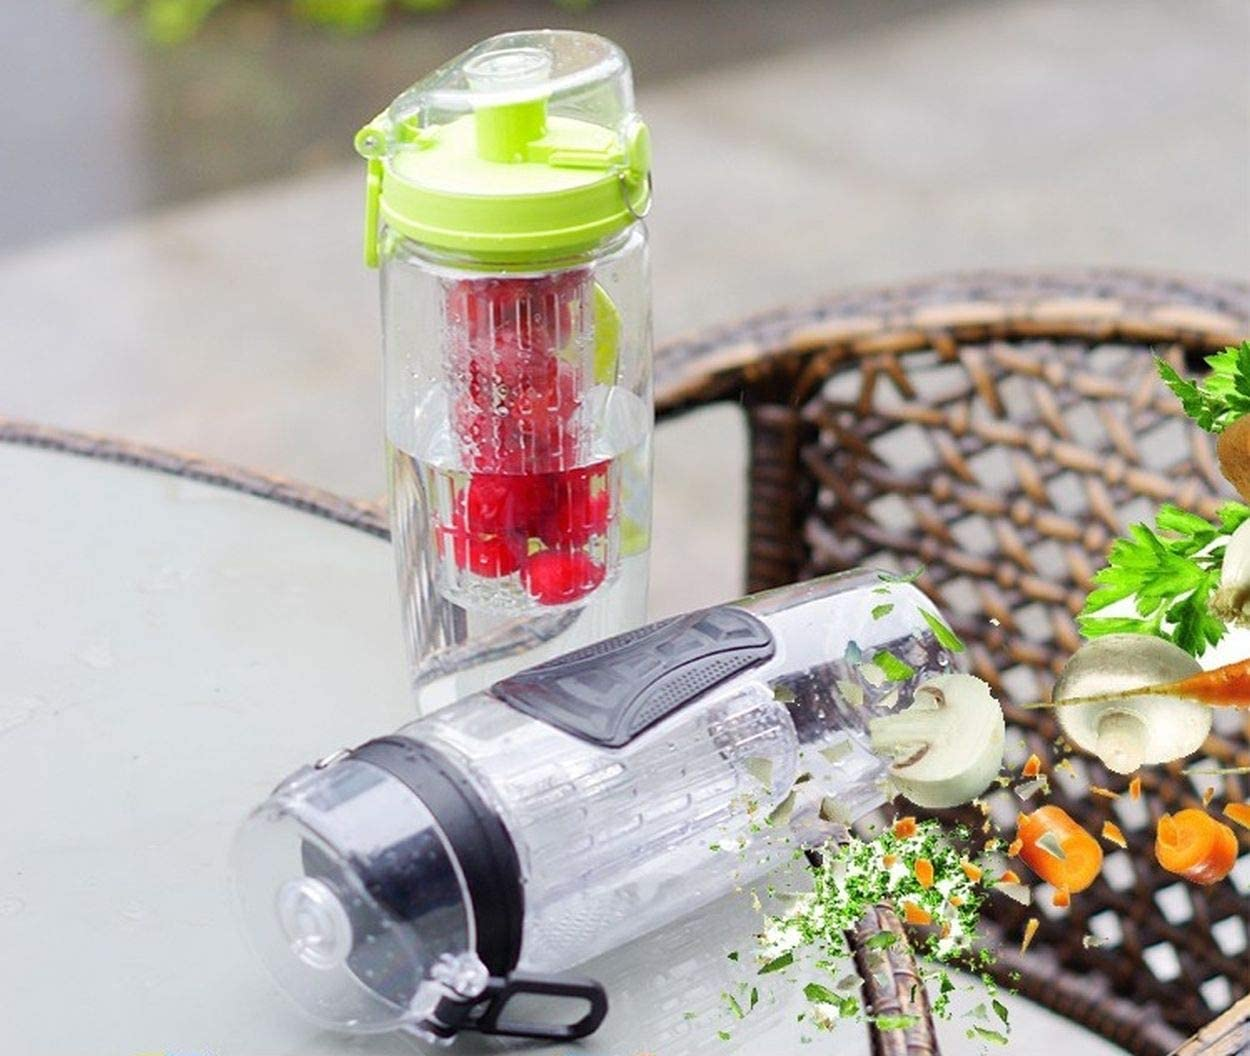 Foster's 32 Oz Fruit Infused Water Bottle with Sport Flip Top - BPA Free